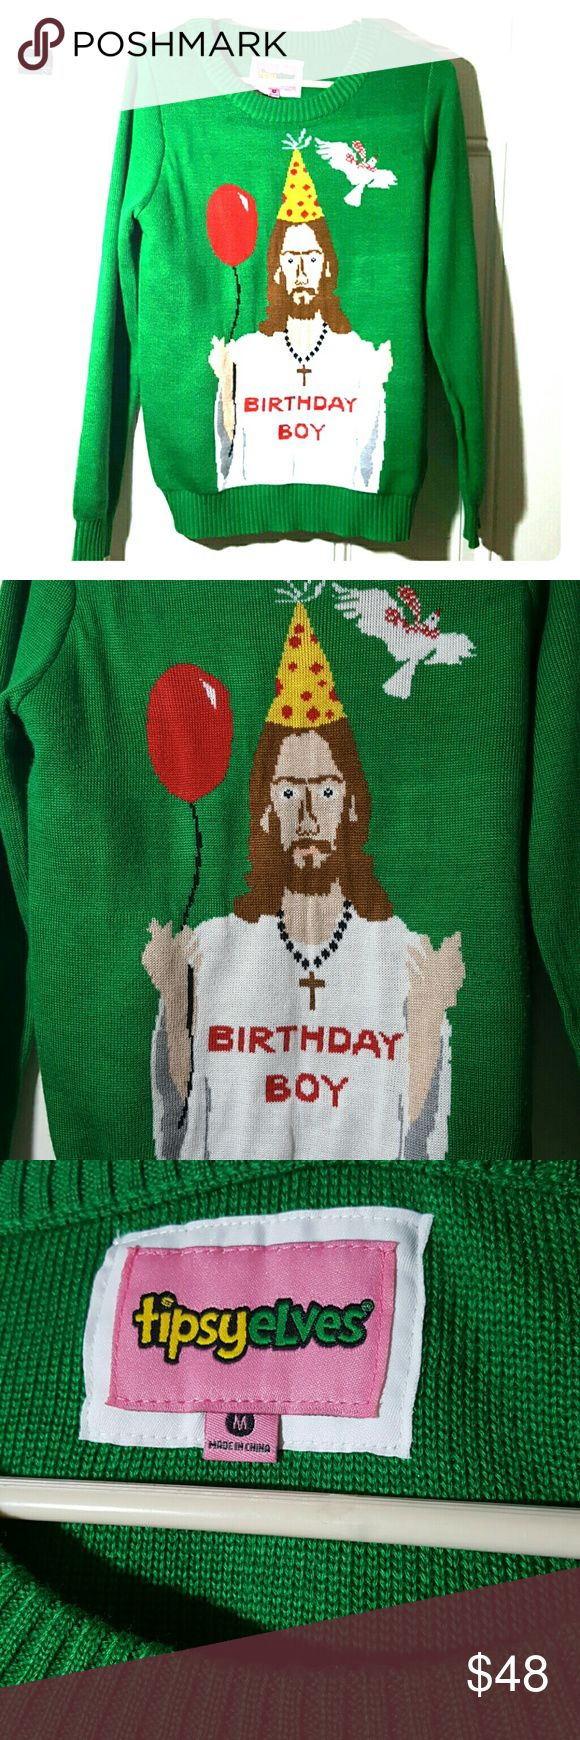 Tipsy Elves green Jesus birthday boy sweater Tipsy elves  Size M Green   Jesus birthday boy wearing a party hat & holding a balloon! Perfect fun christmas sweater.  Excellent like new condition!  ➡ Same day shipping! Monday through Saturday!⬅ 🚩 Cross-posted 🚩 Tipsy Elves Sweaters